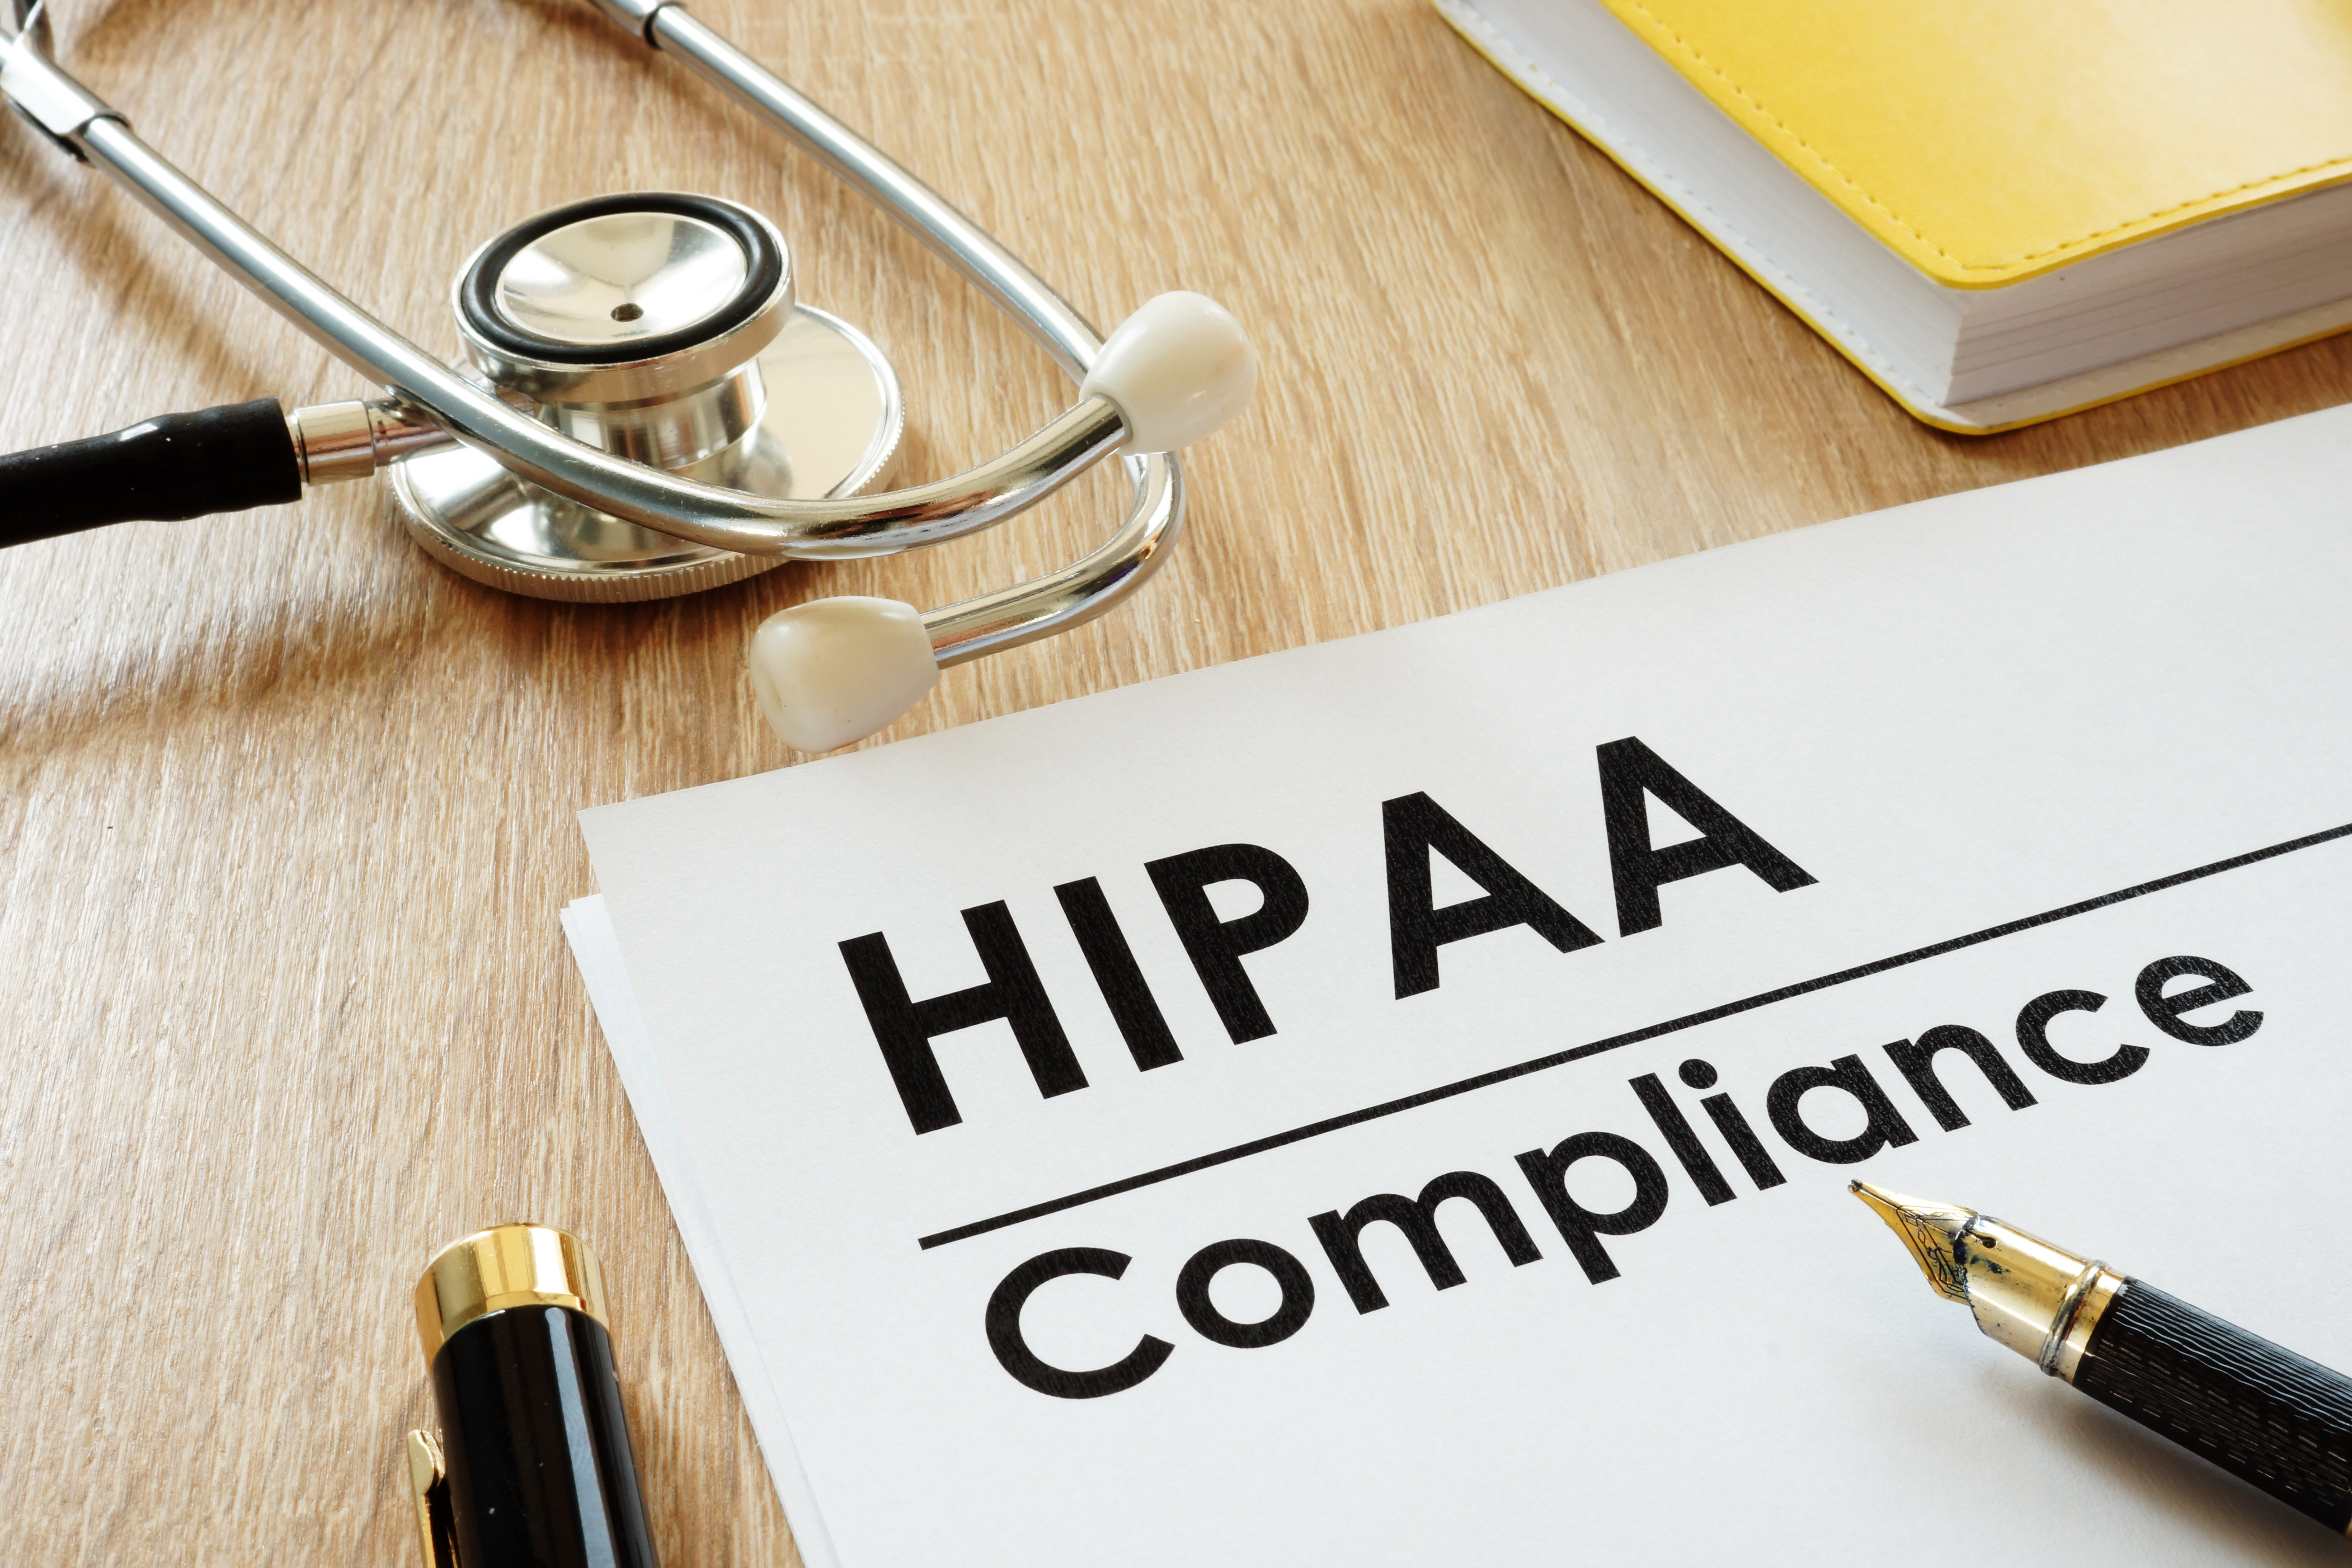 Complying with HIPAA standards is a must when integrating telehealth into your healthcare solution.